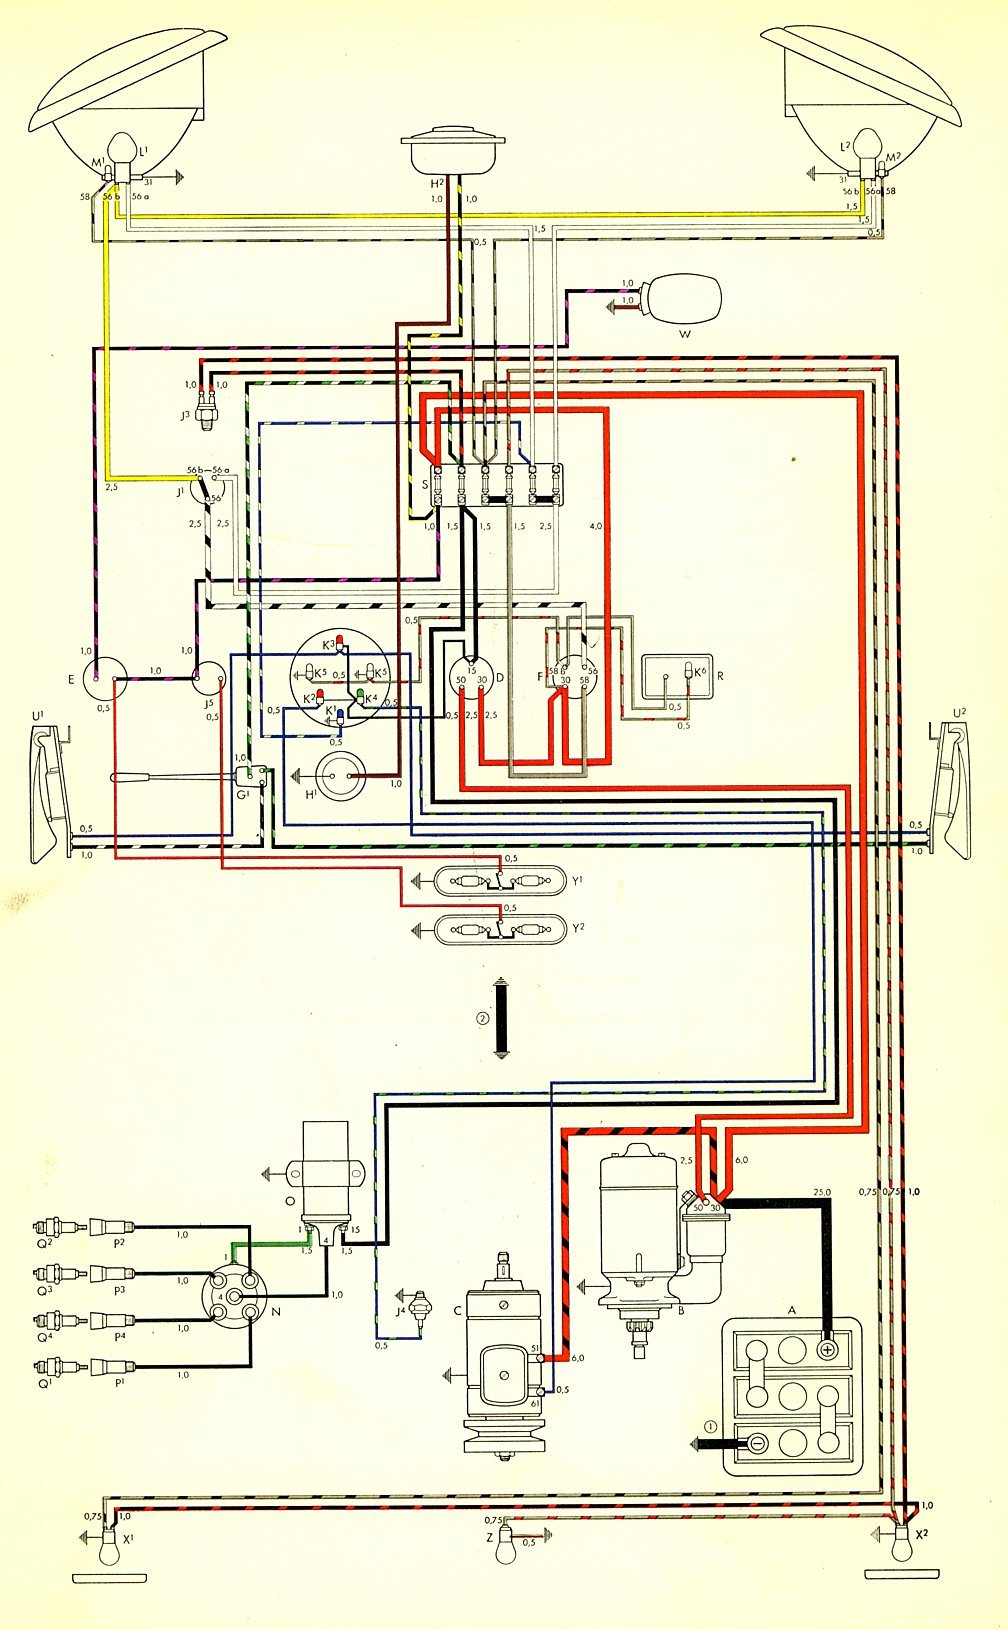 thesamba com type 2 wiring diagrams rh thesamba com electrical diagram template electrical diagram symbols chart